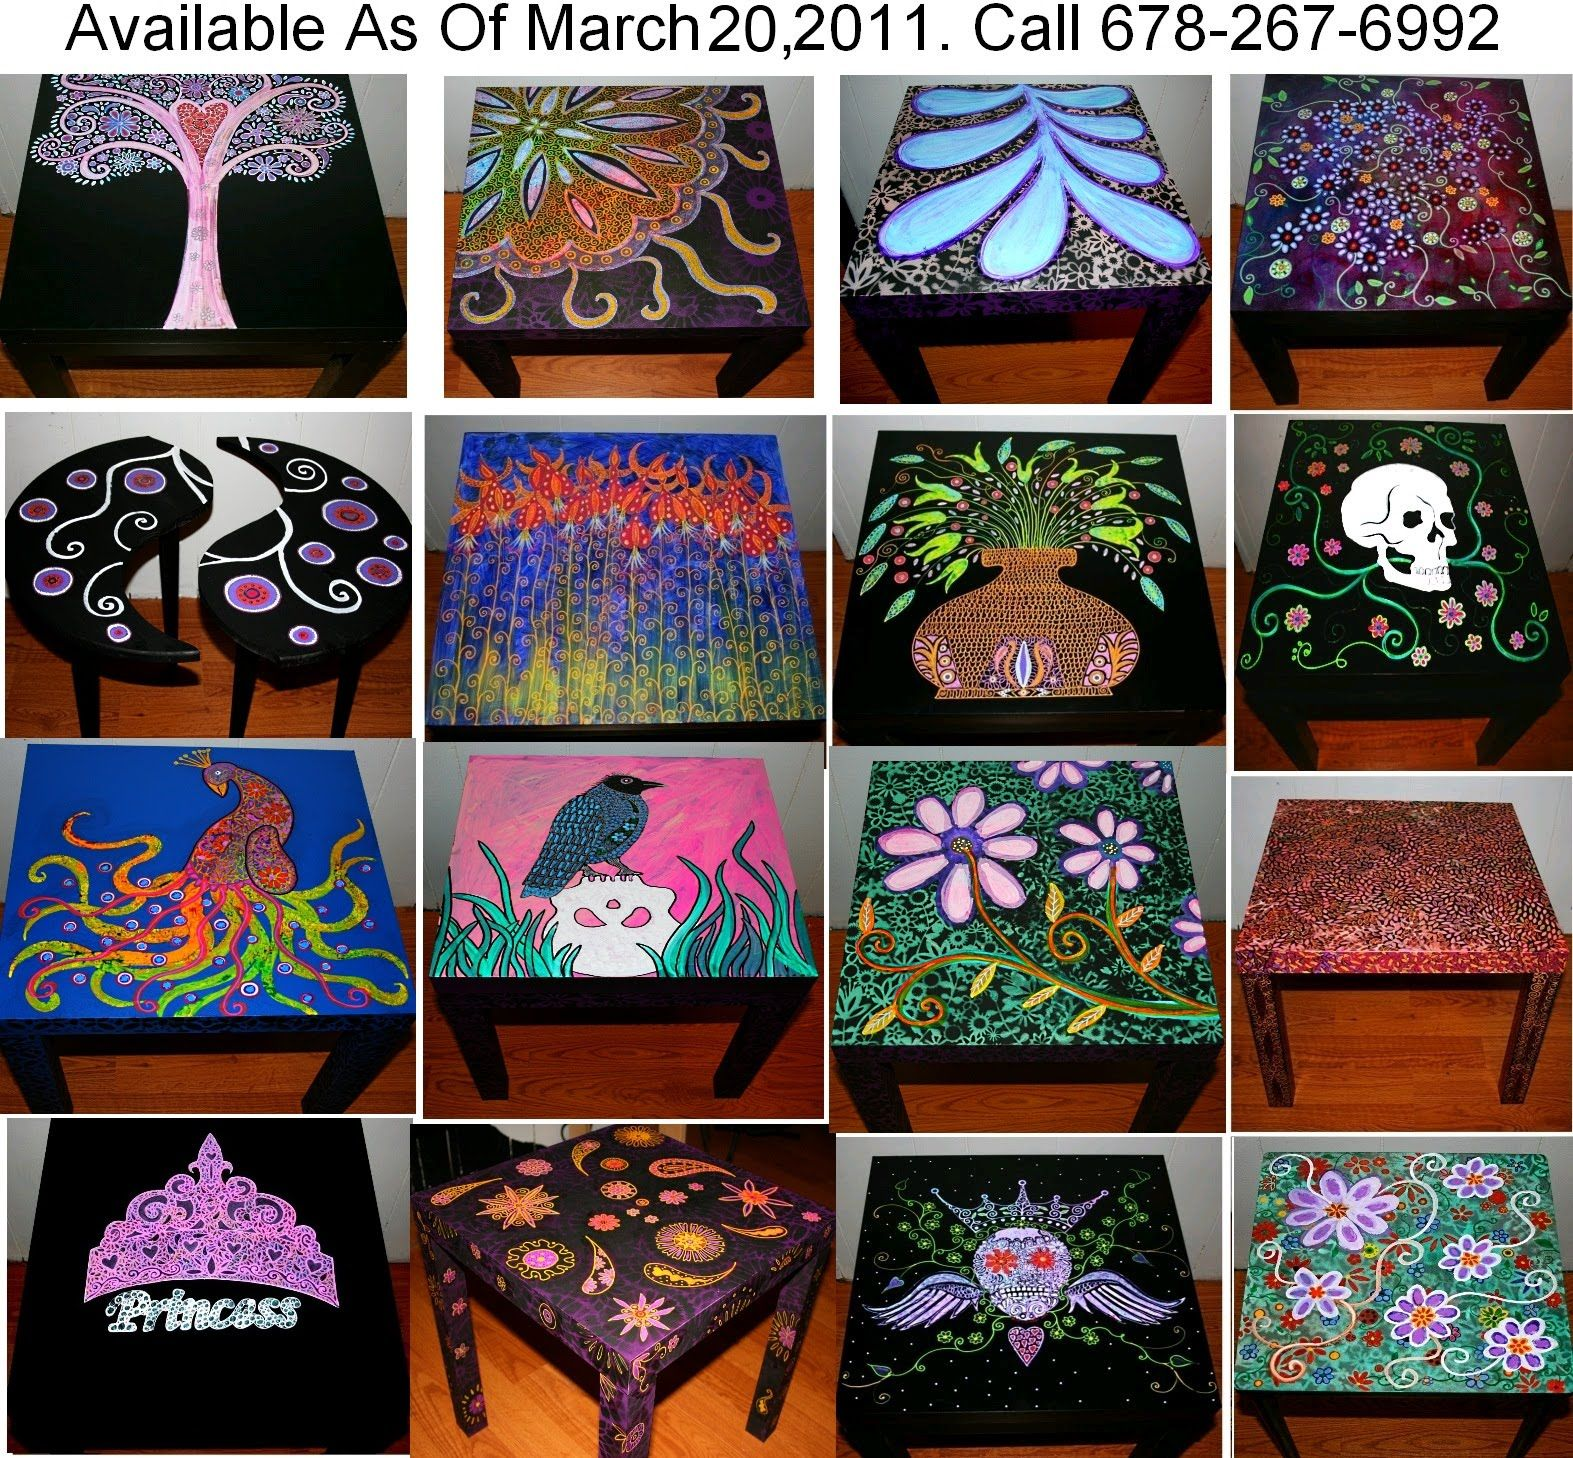 Painted Furniture Ideas Funky Home Decor  Hand Painted Coffee  Tables Nightstands All One. Funky Home Decor  Hand Painted Coffee Tables Nightstands  All One